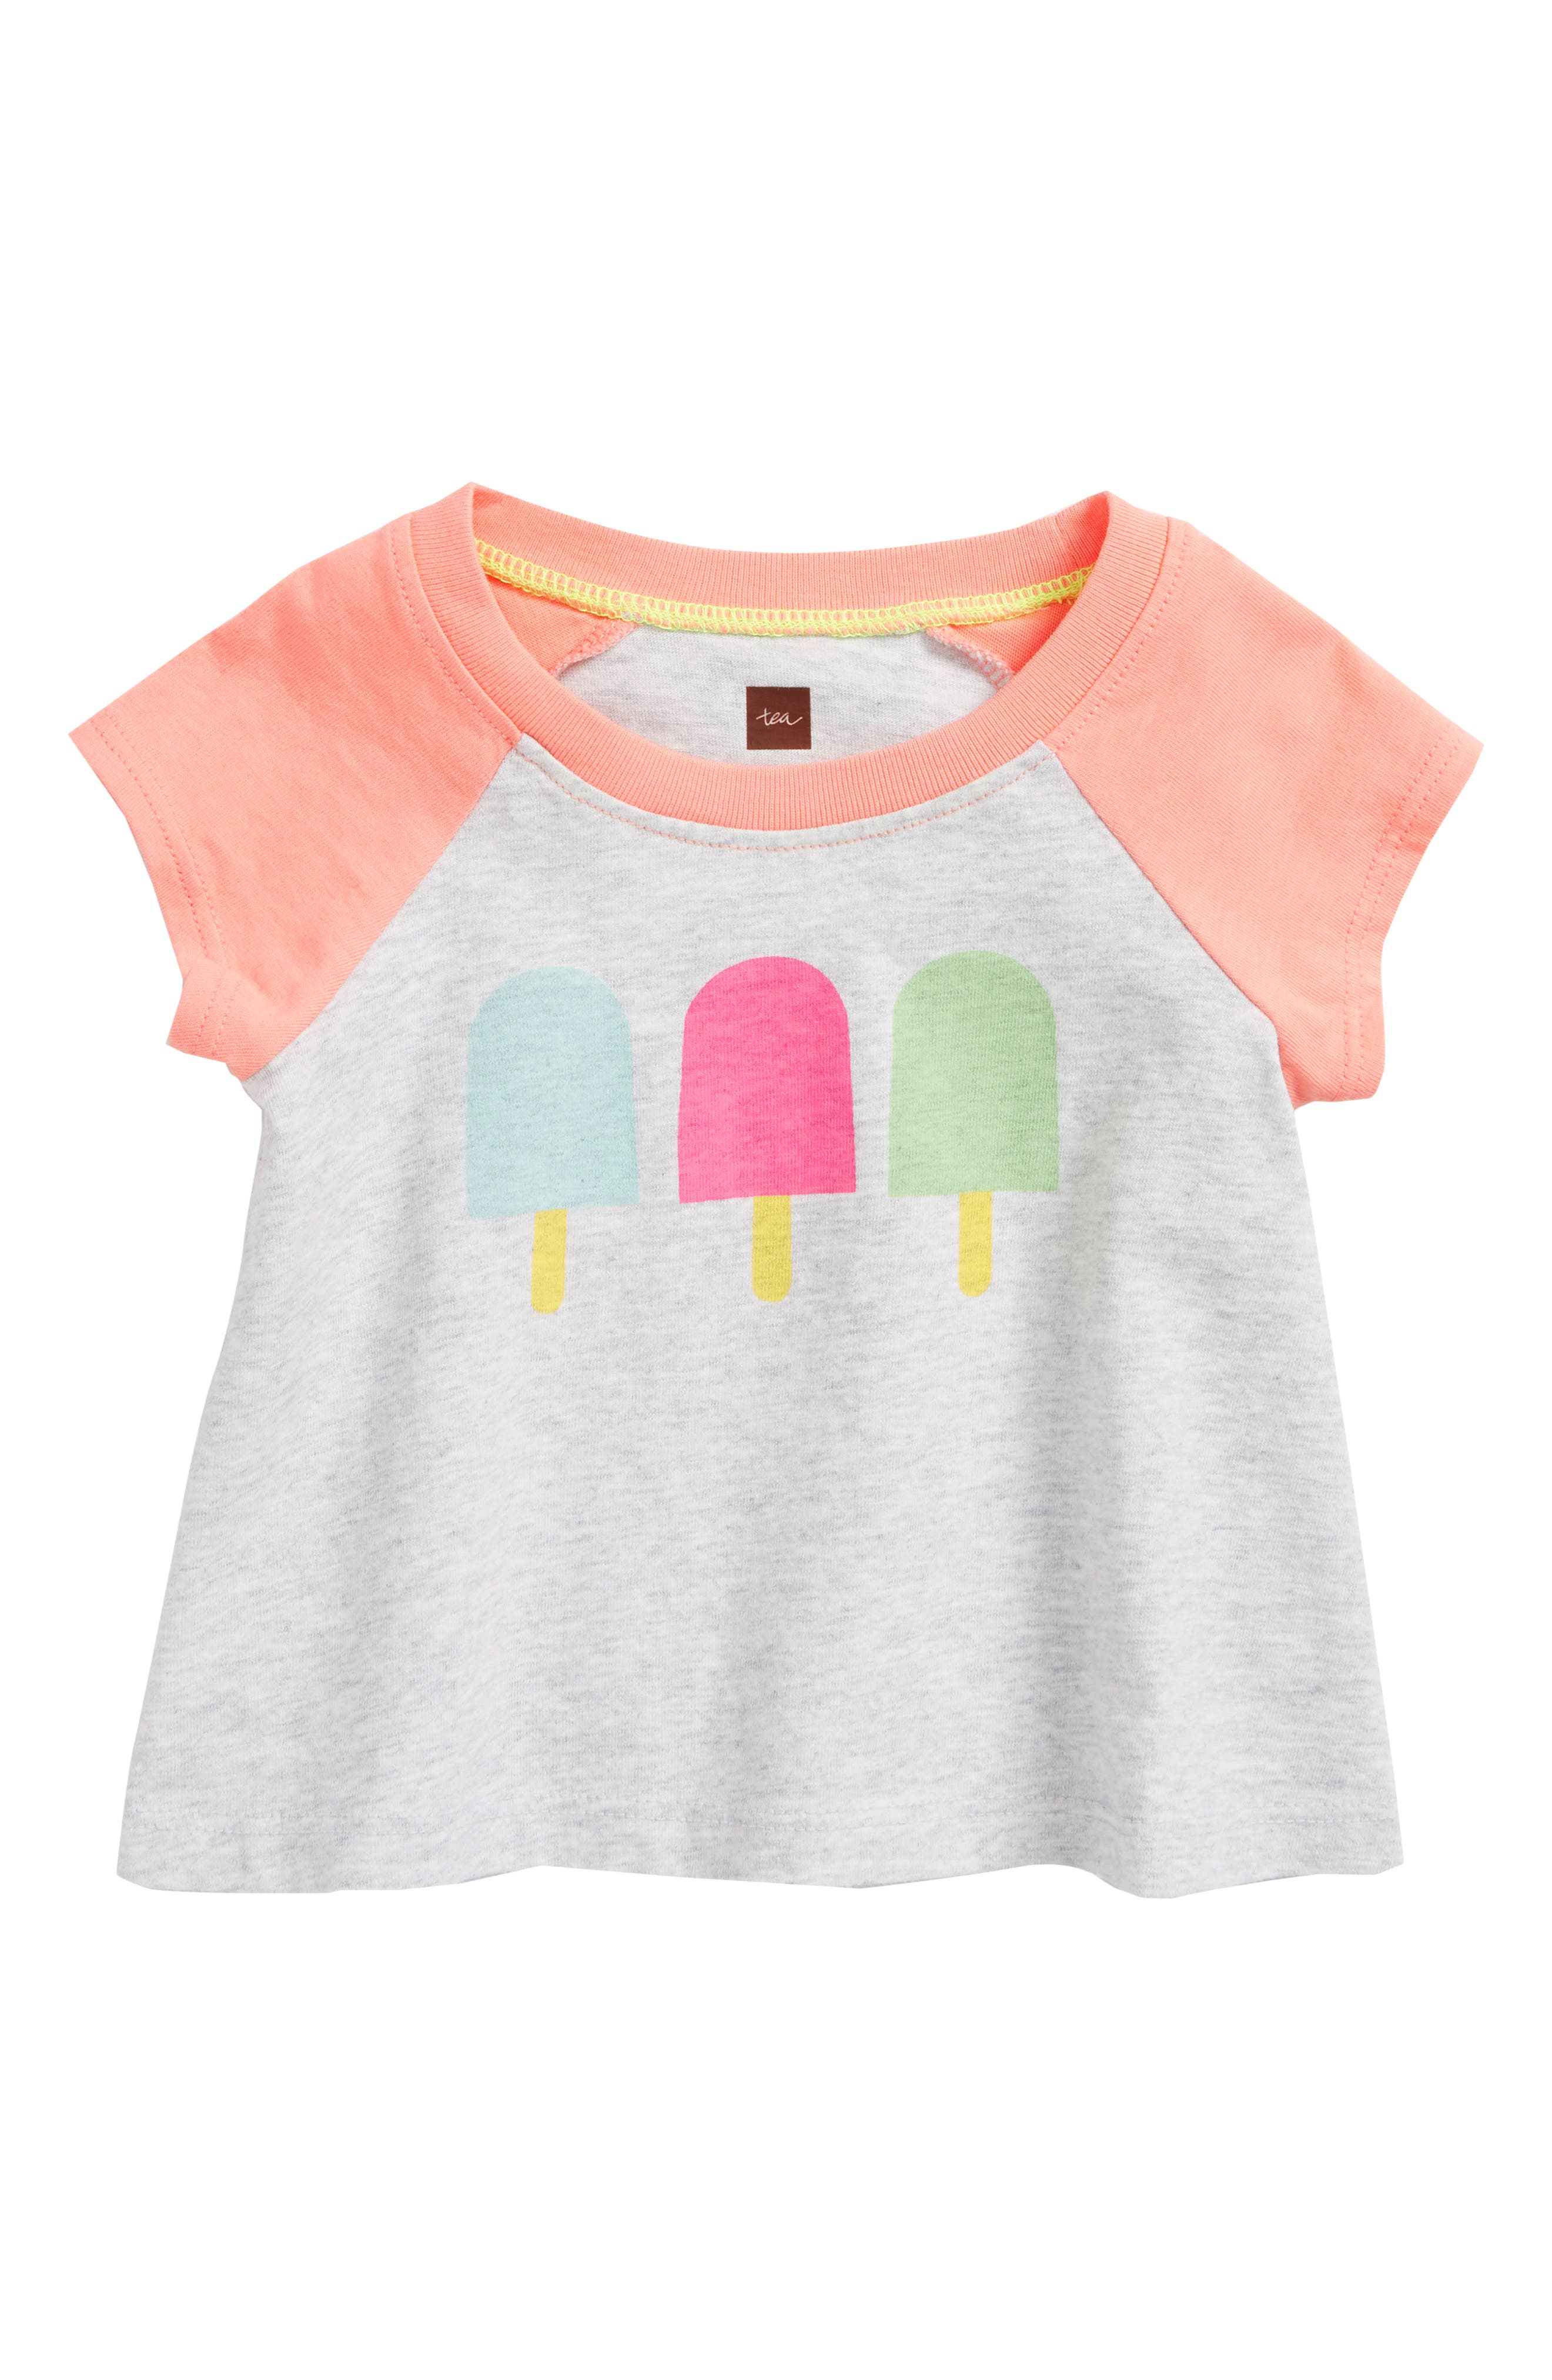 Popsicle Tee,                         Main,                         color, Light Grey Heather